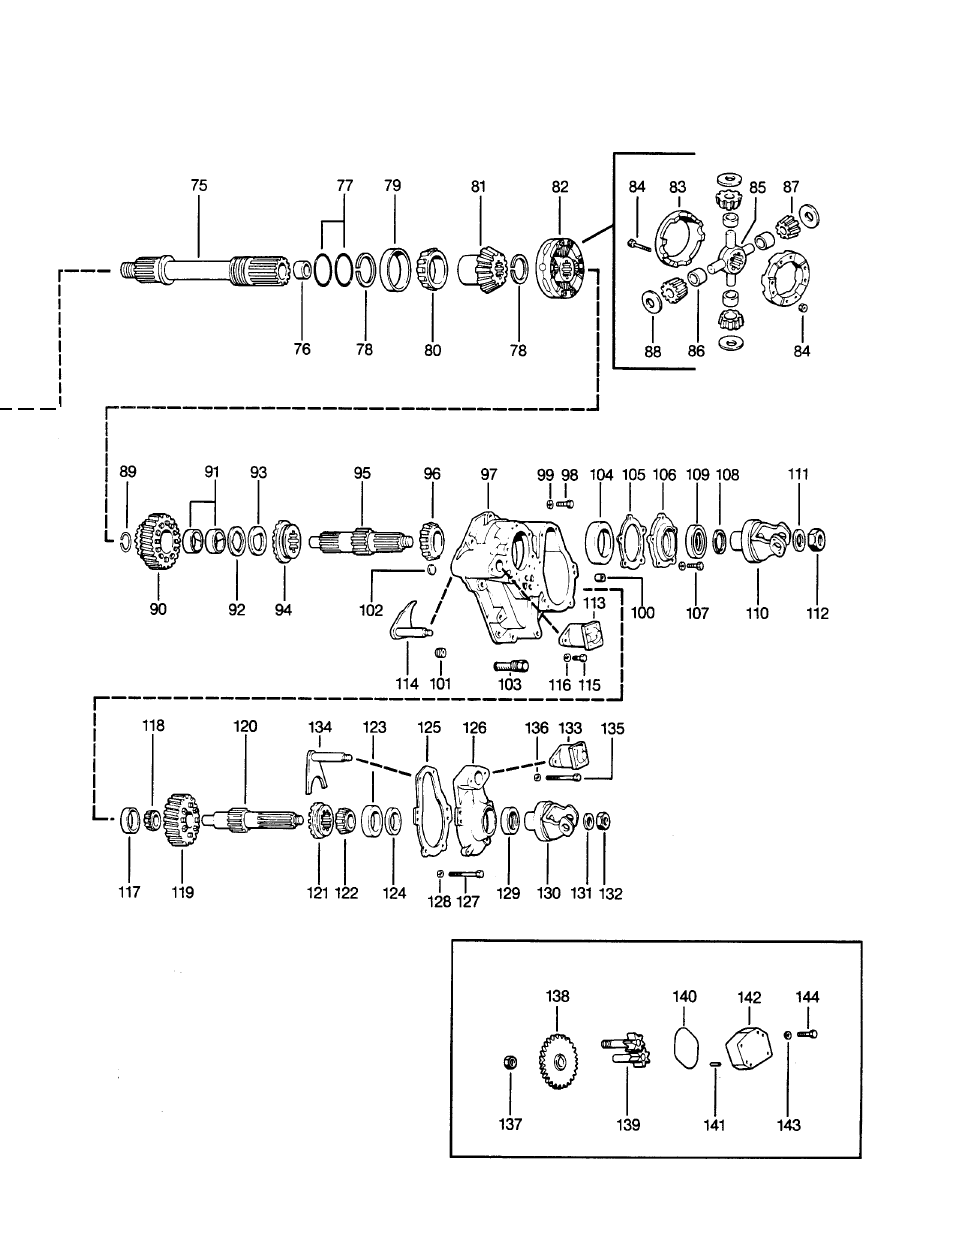 Spicer Drive System Illustrated Parts List ESD D386, D406